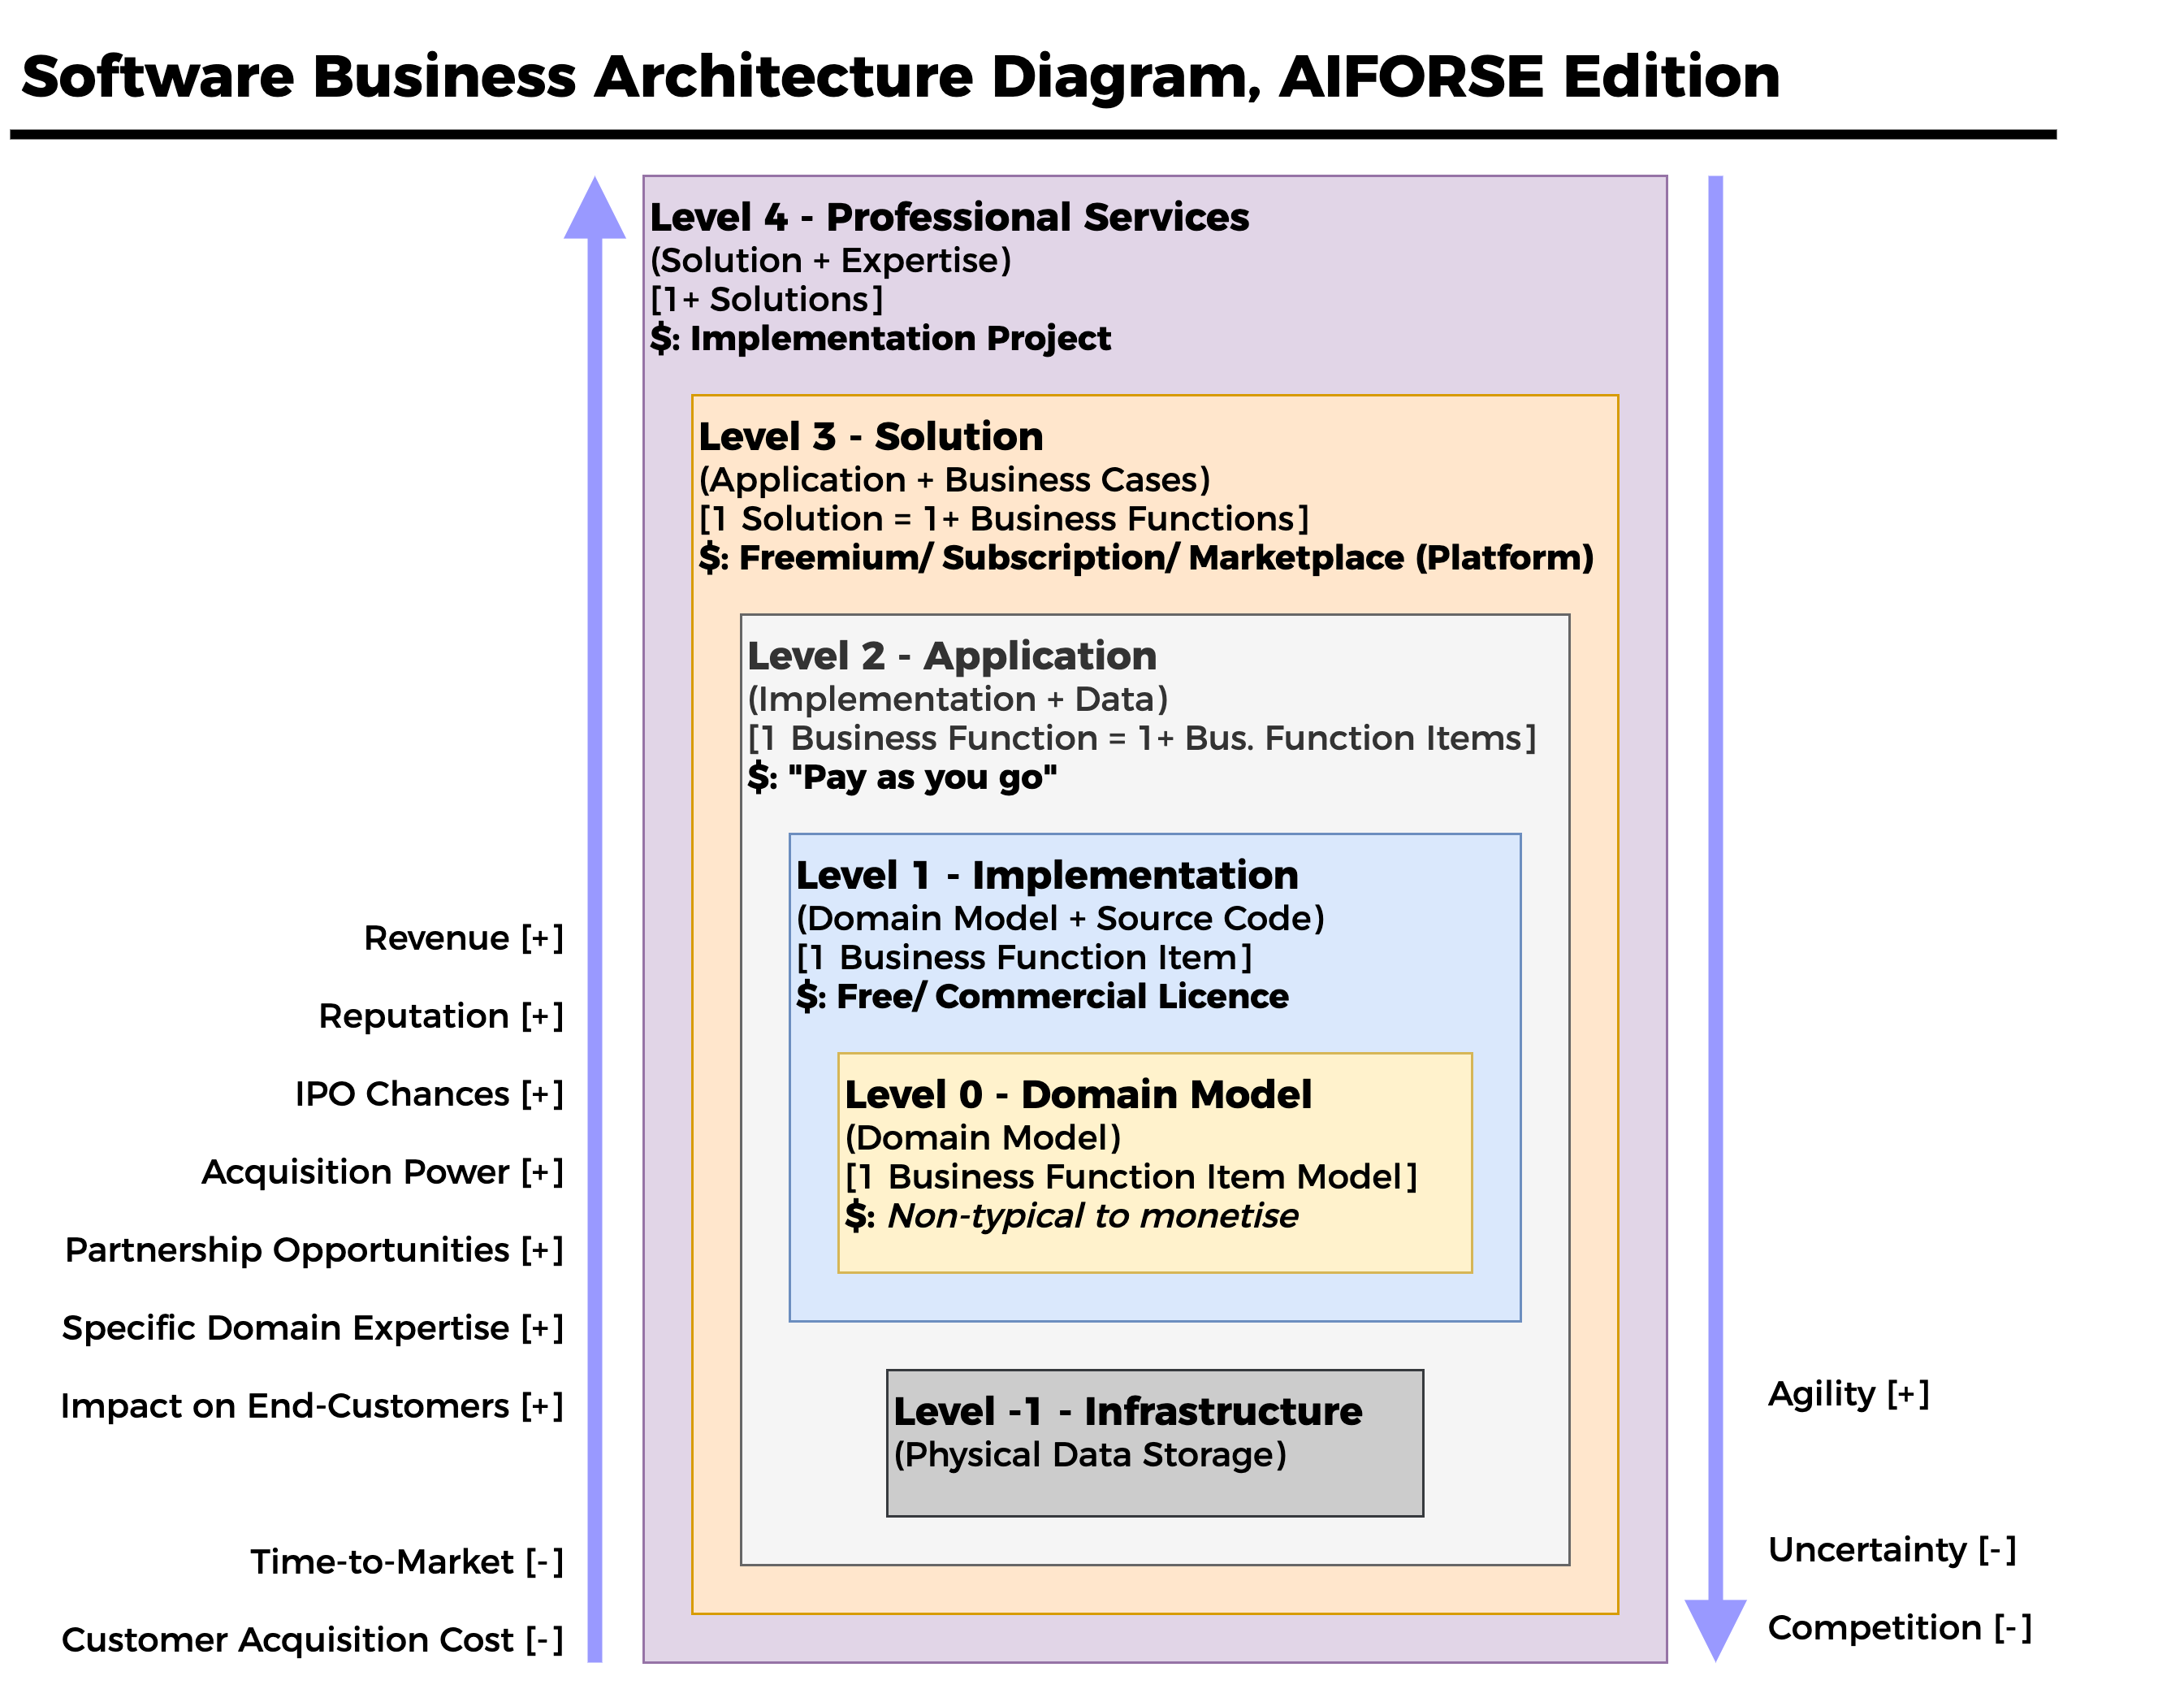 Software Business Architecture Diagram, AIFORSE Edition